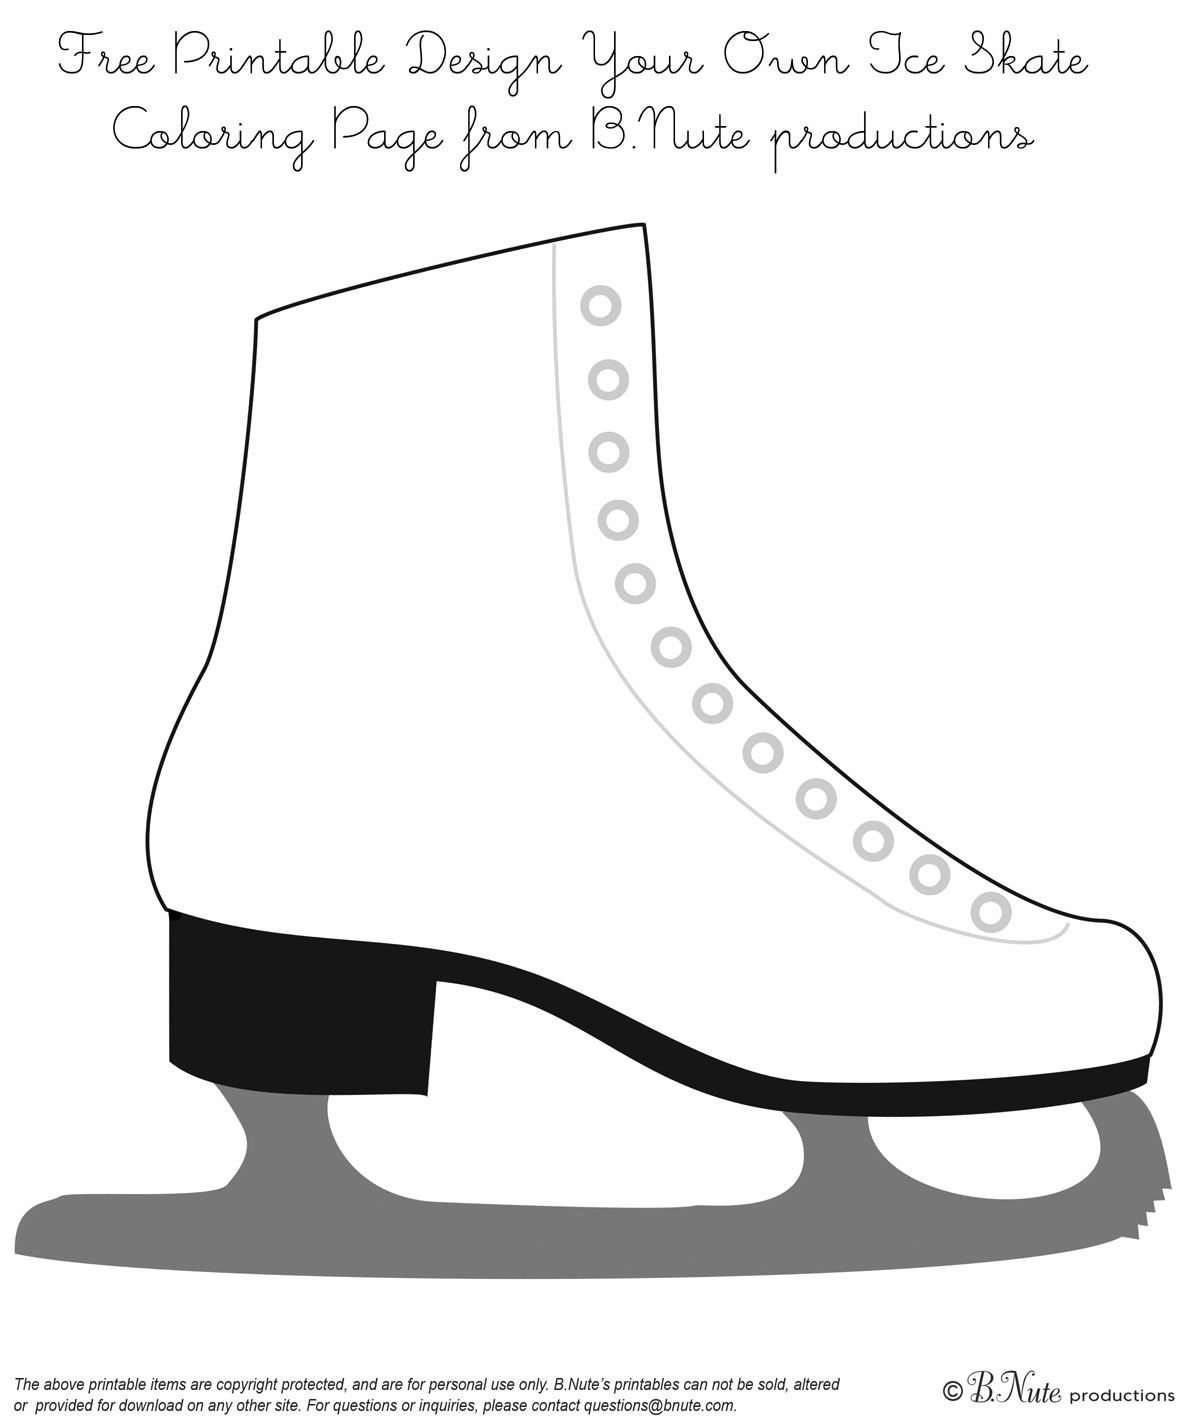 Roller skates coloring pages - Free Printable Coloring Page Design Your Own Ice Skate